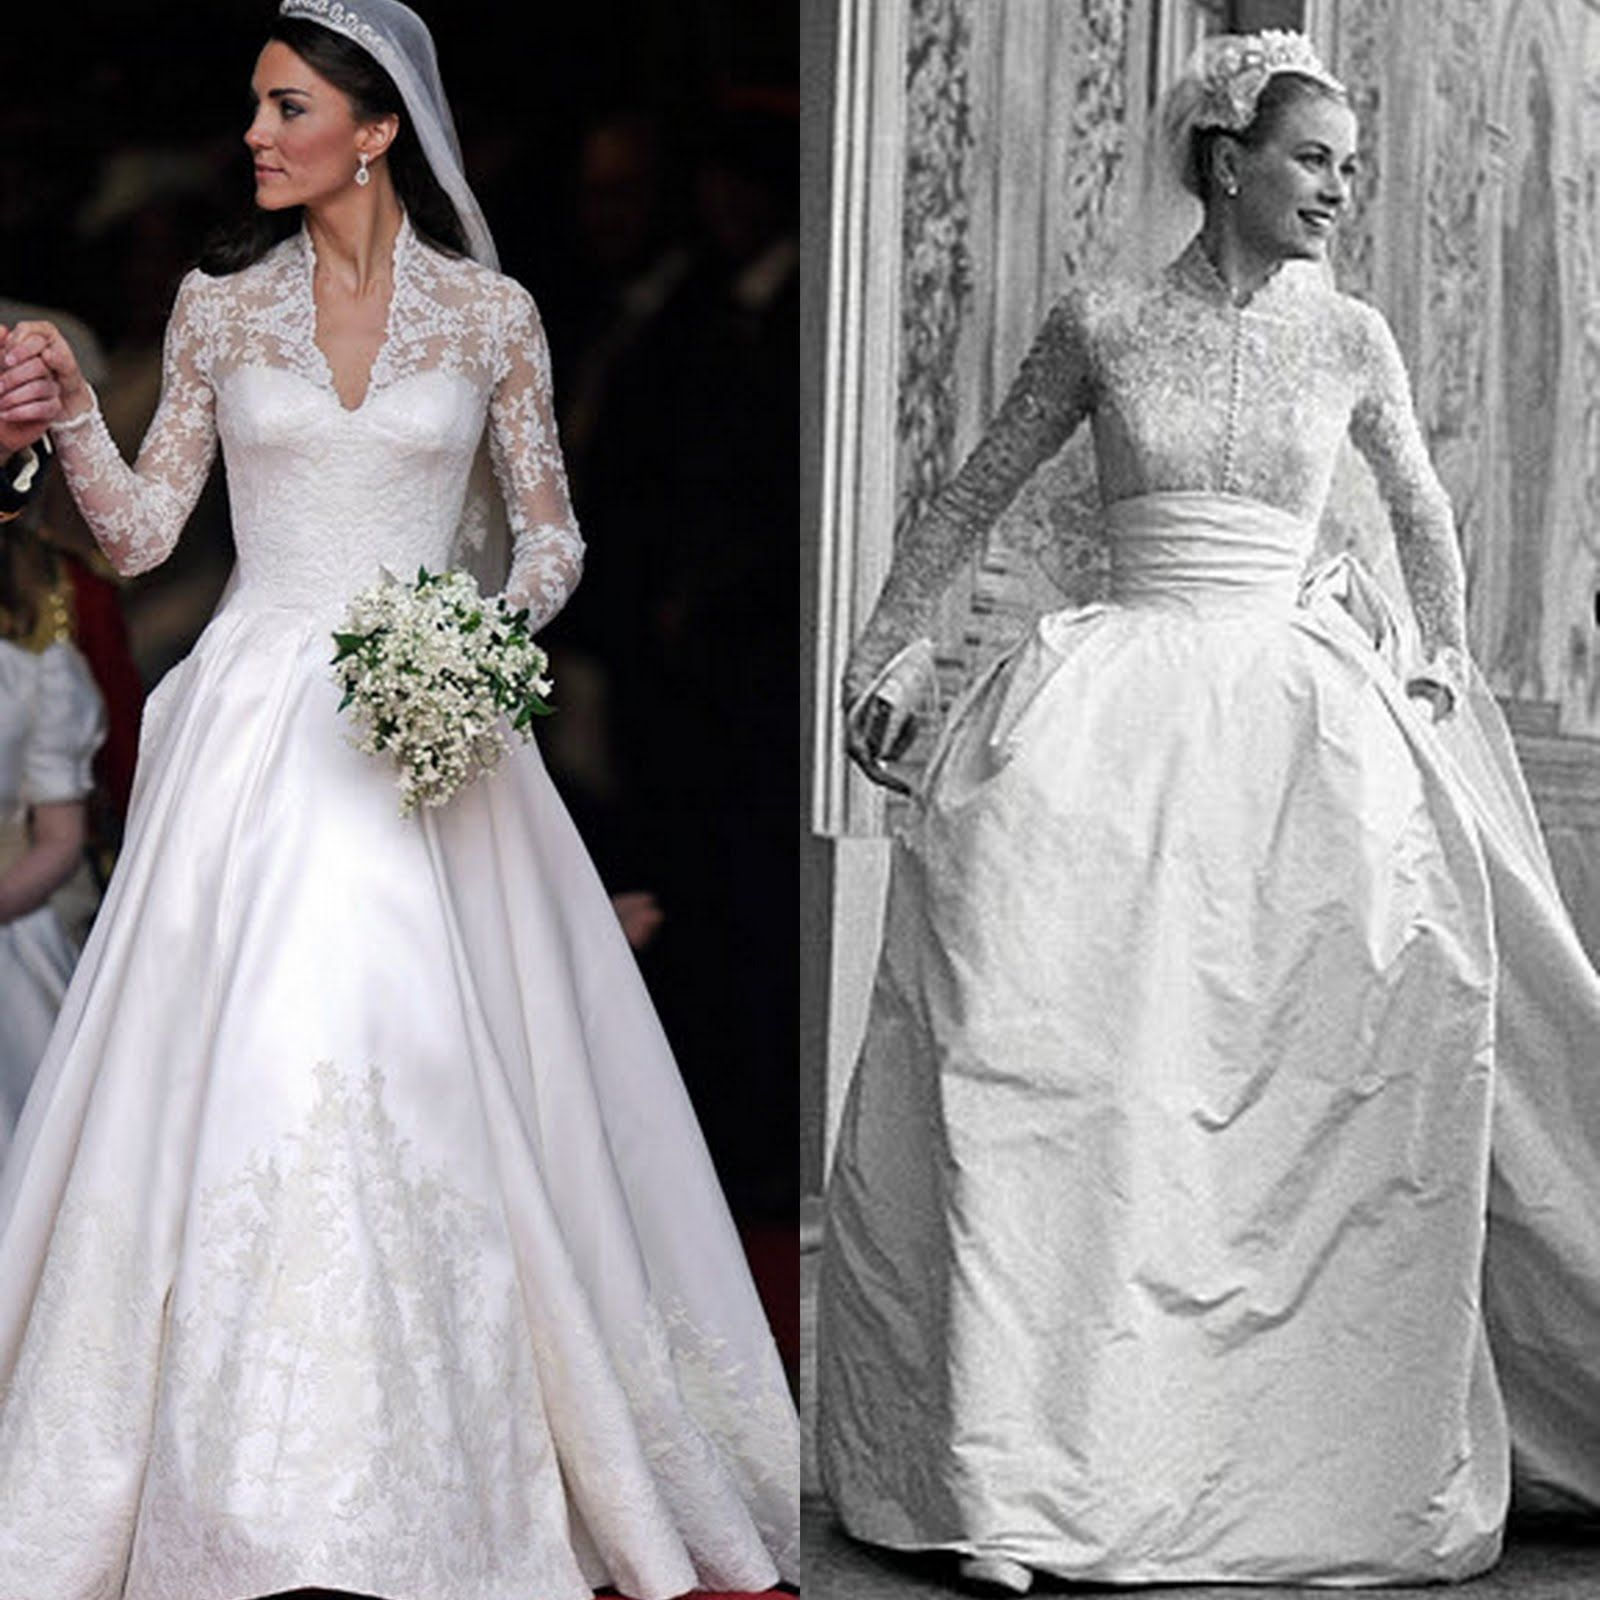 Was kate middleton 39 s dress inspired by grace kelly for Princess catherine wedding dress